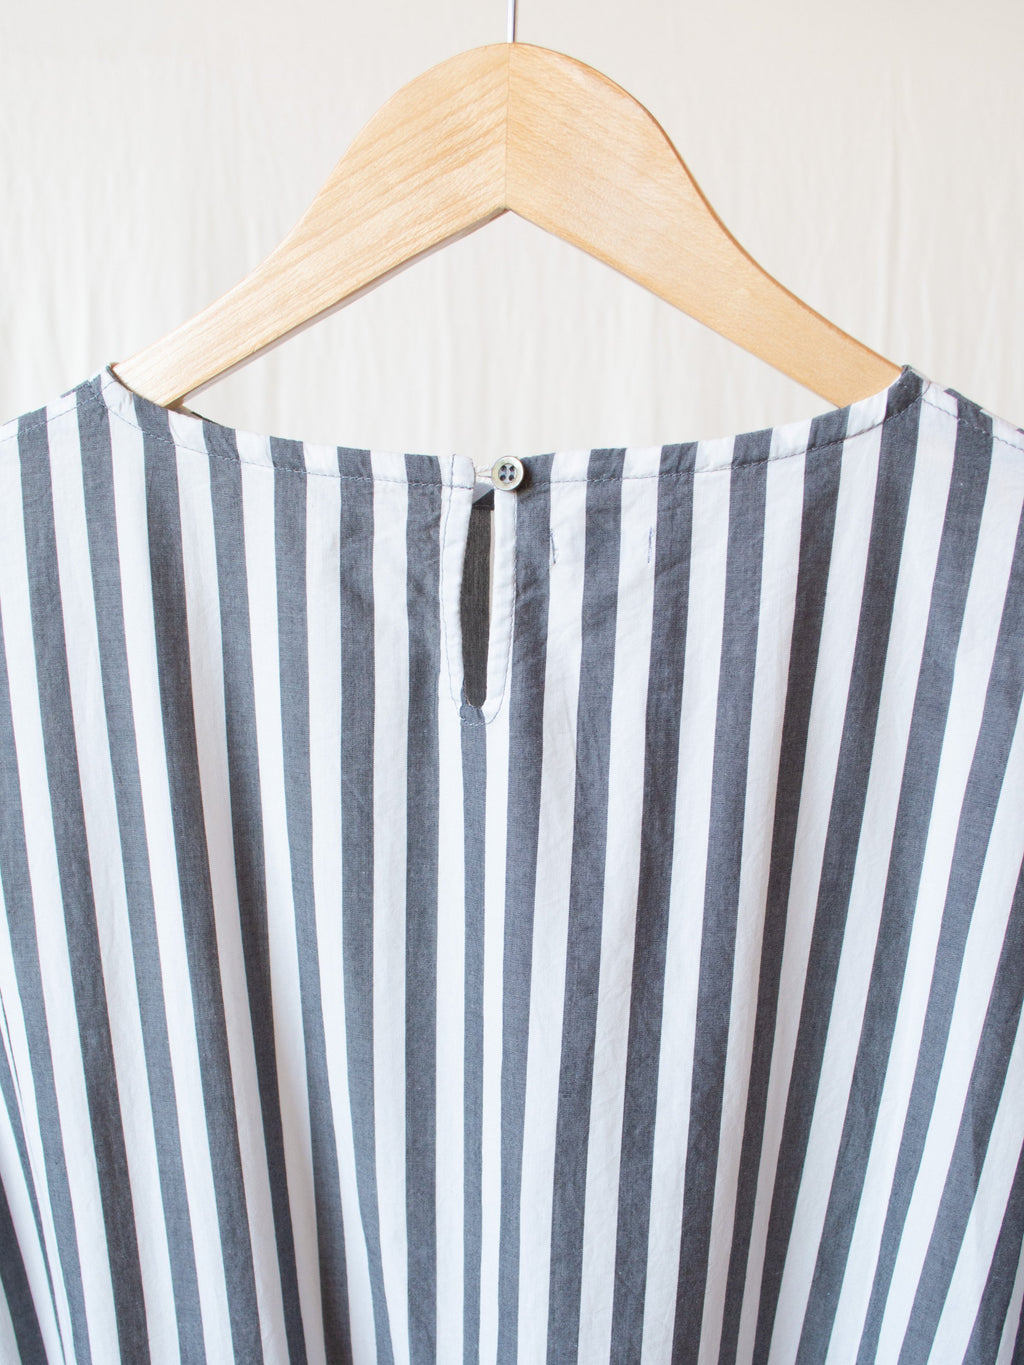 Namu Shop - Ichi Antiquites Cotton Dress - Charcoal Stripe